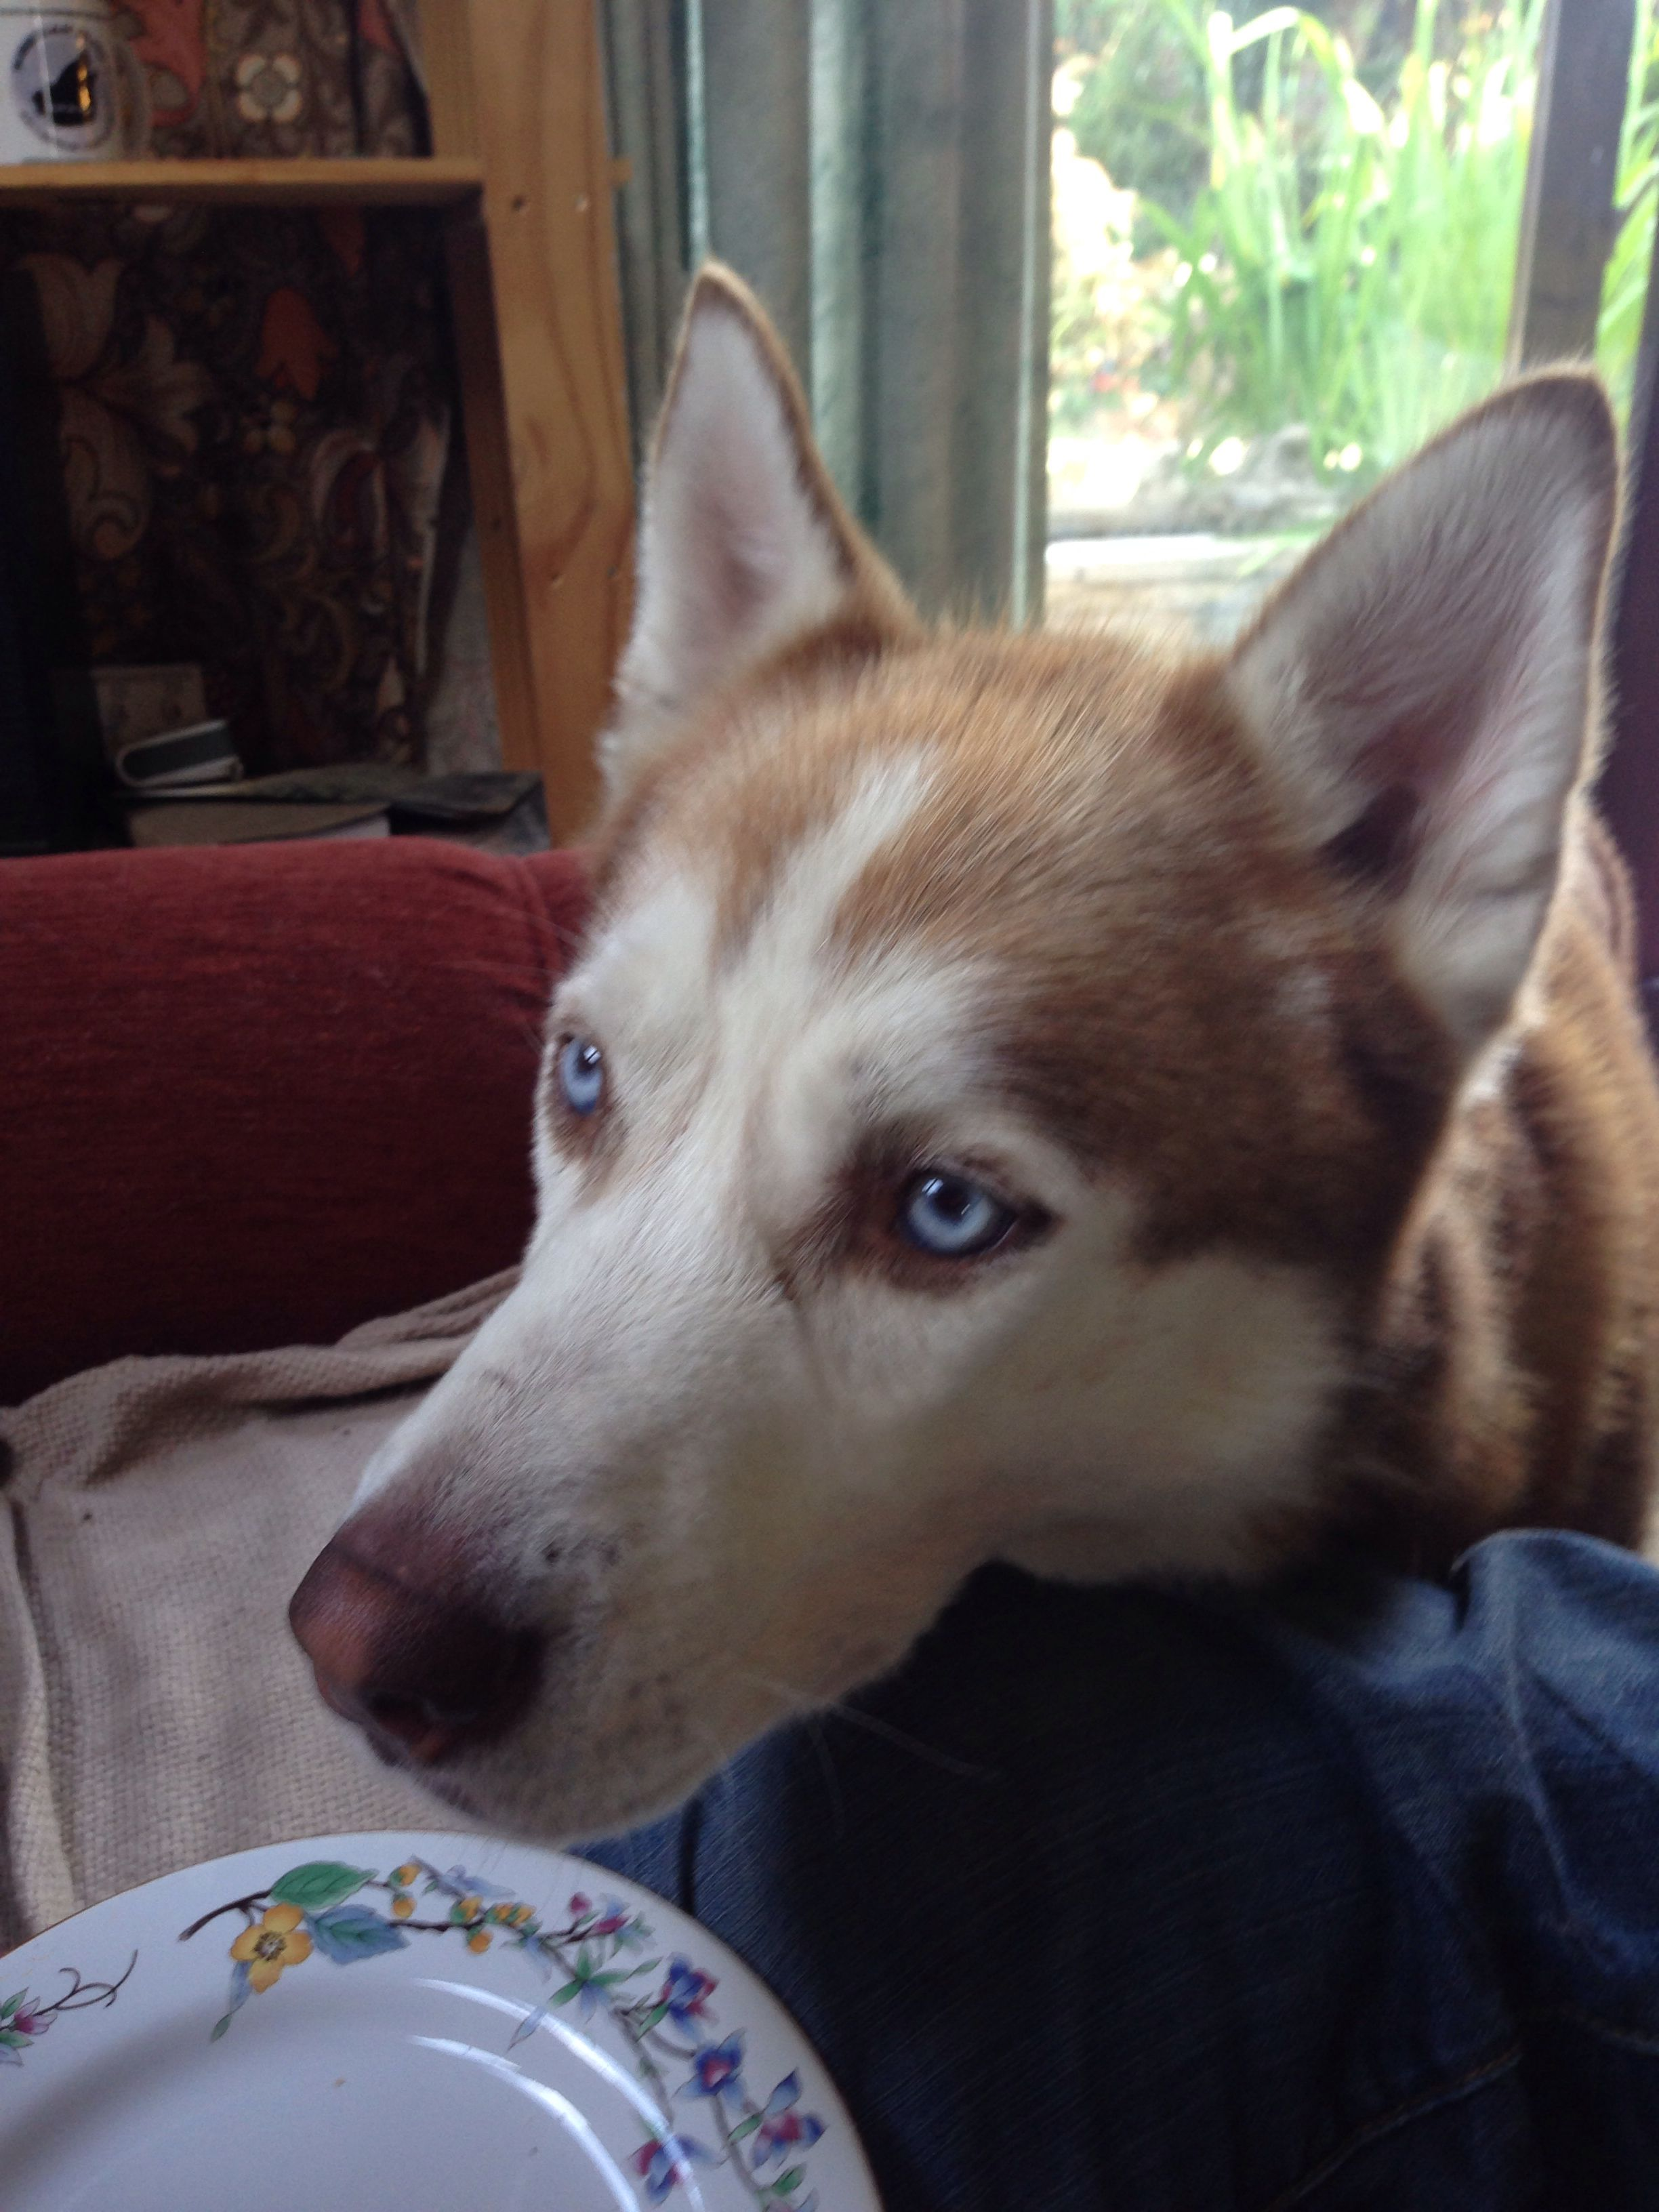 This looks just like our husky, but he has green eyes!!